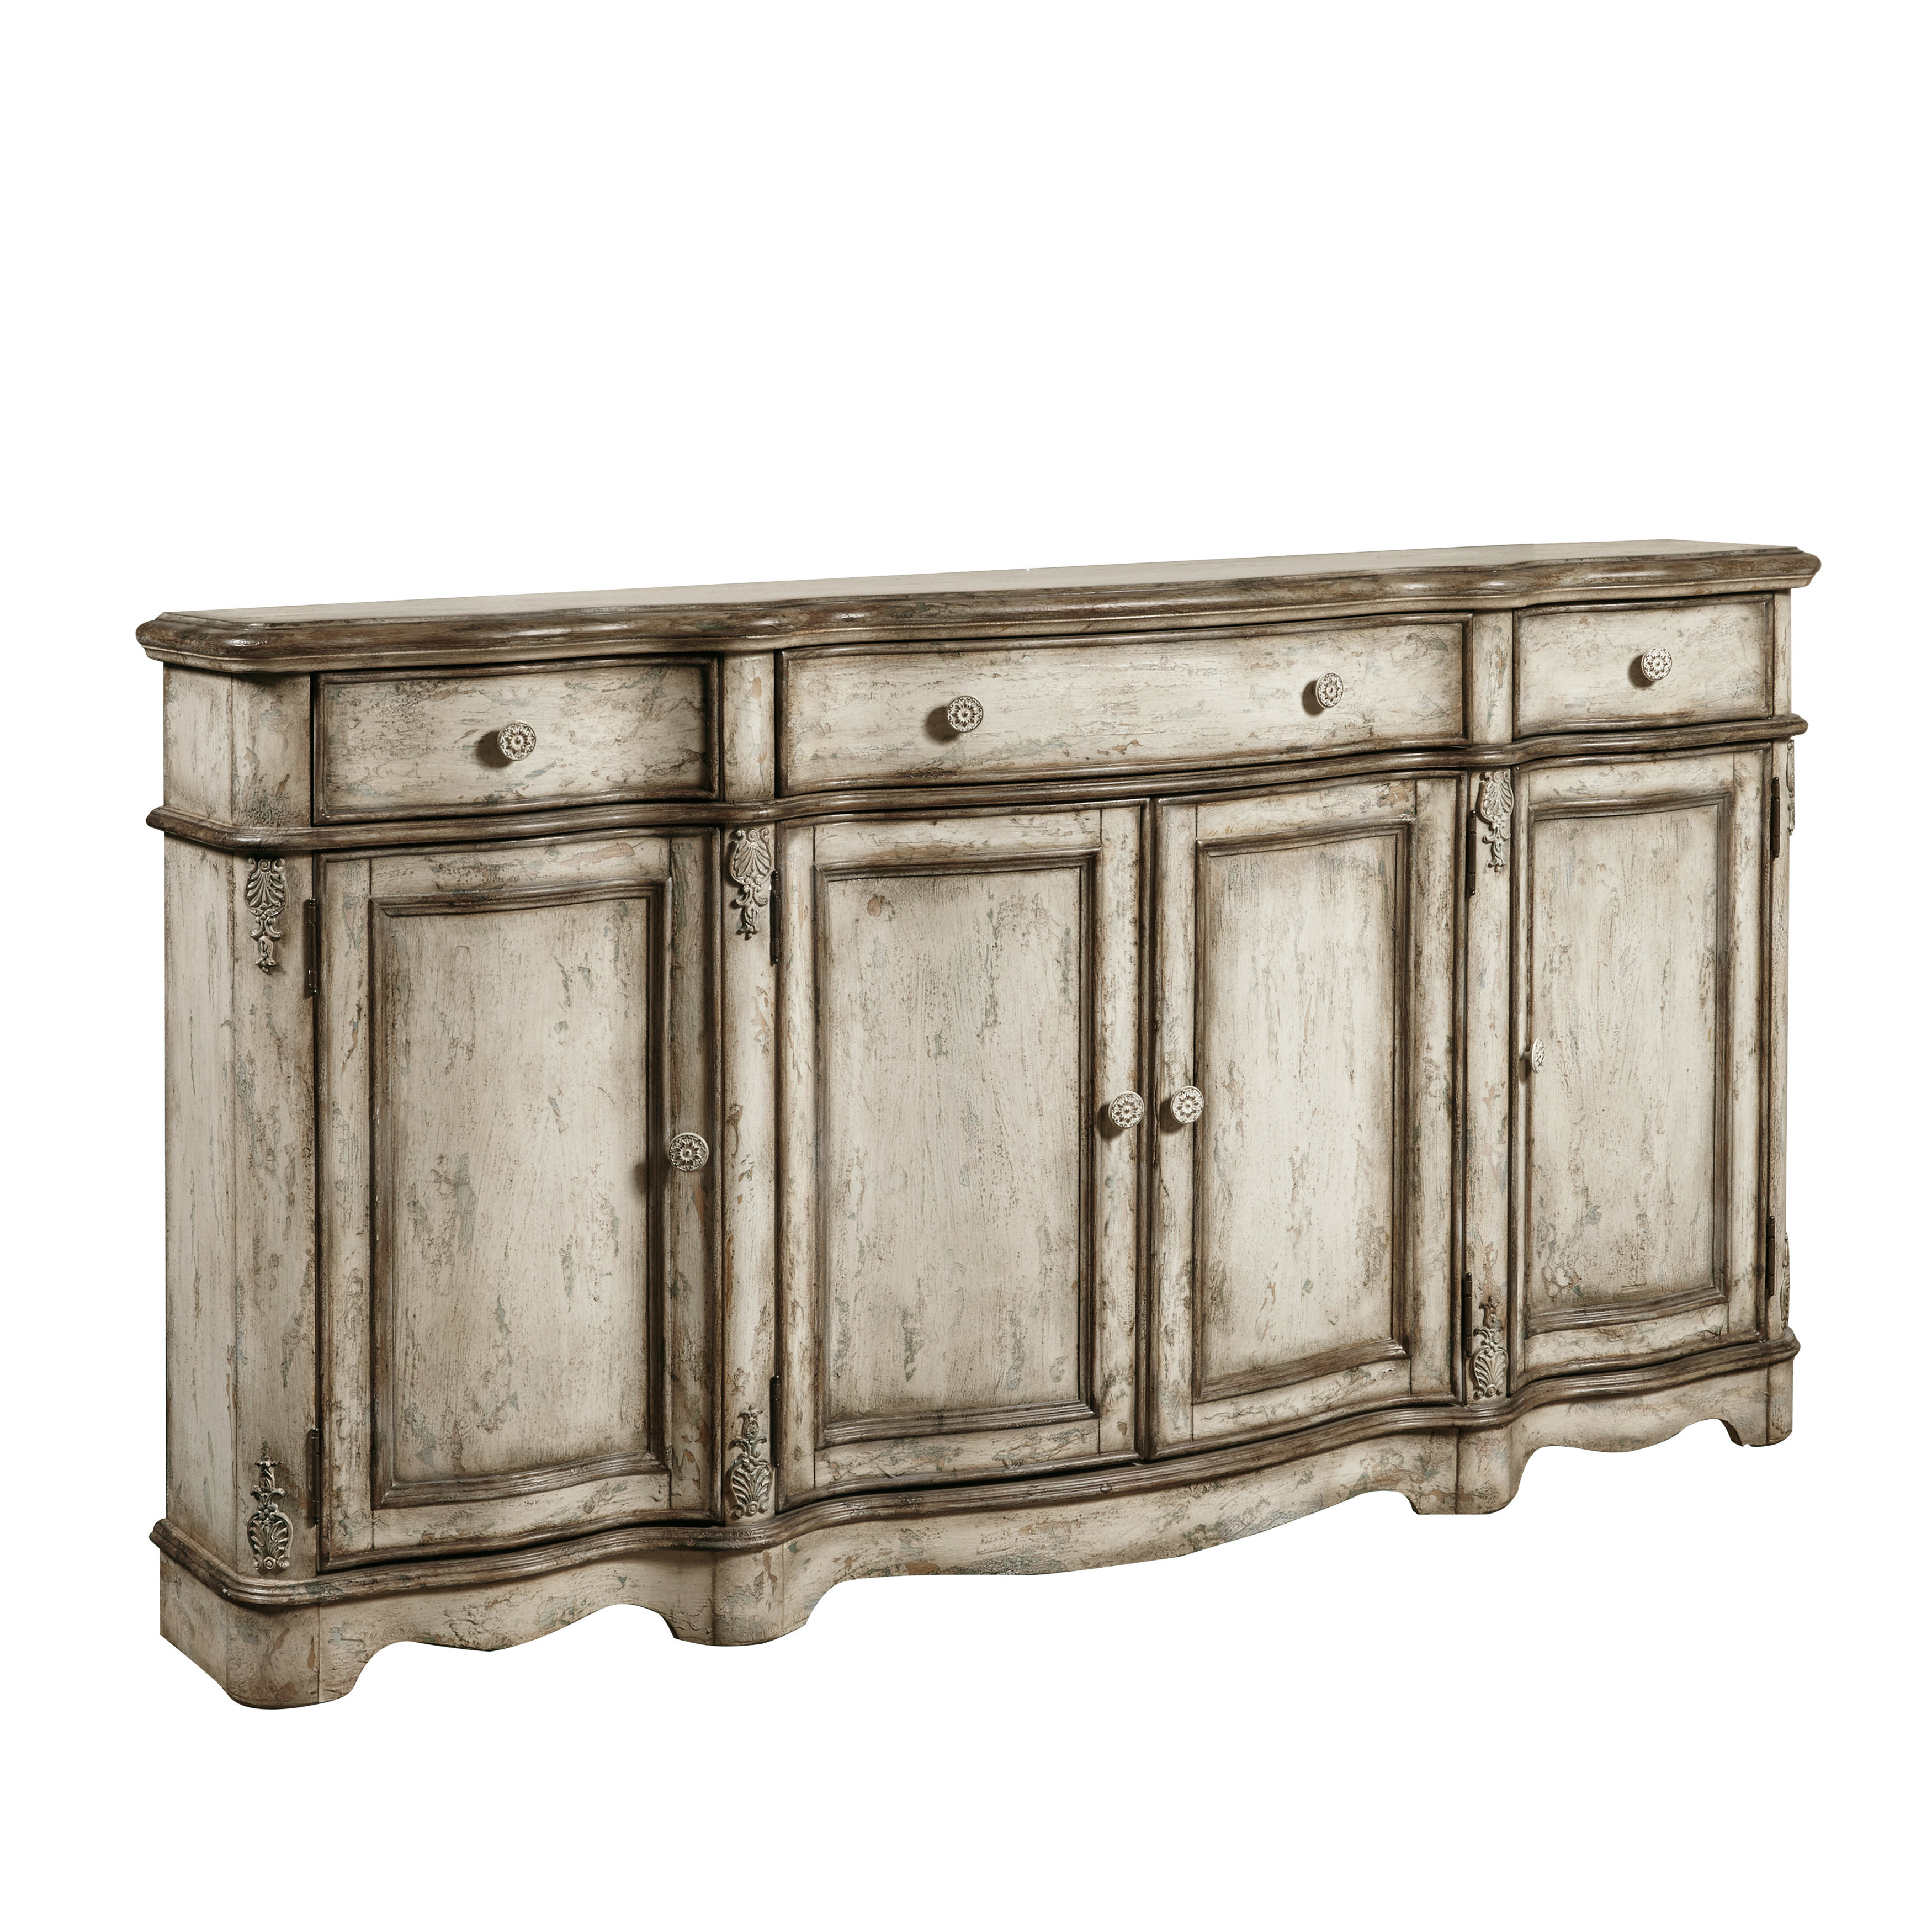 Farmhouse & Rustic Sideboards & Buffets | Birch Lane Inside Rosson Sideboards (View 8 of 20)